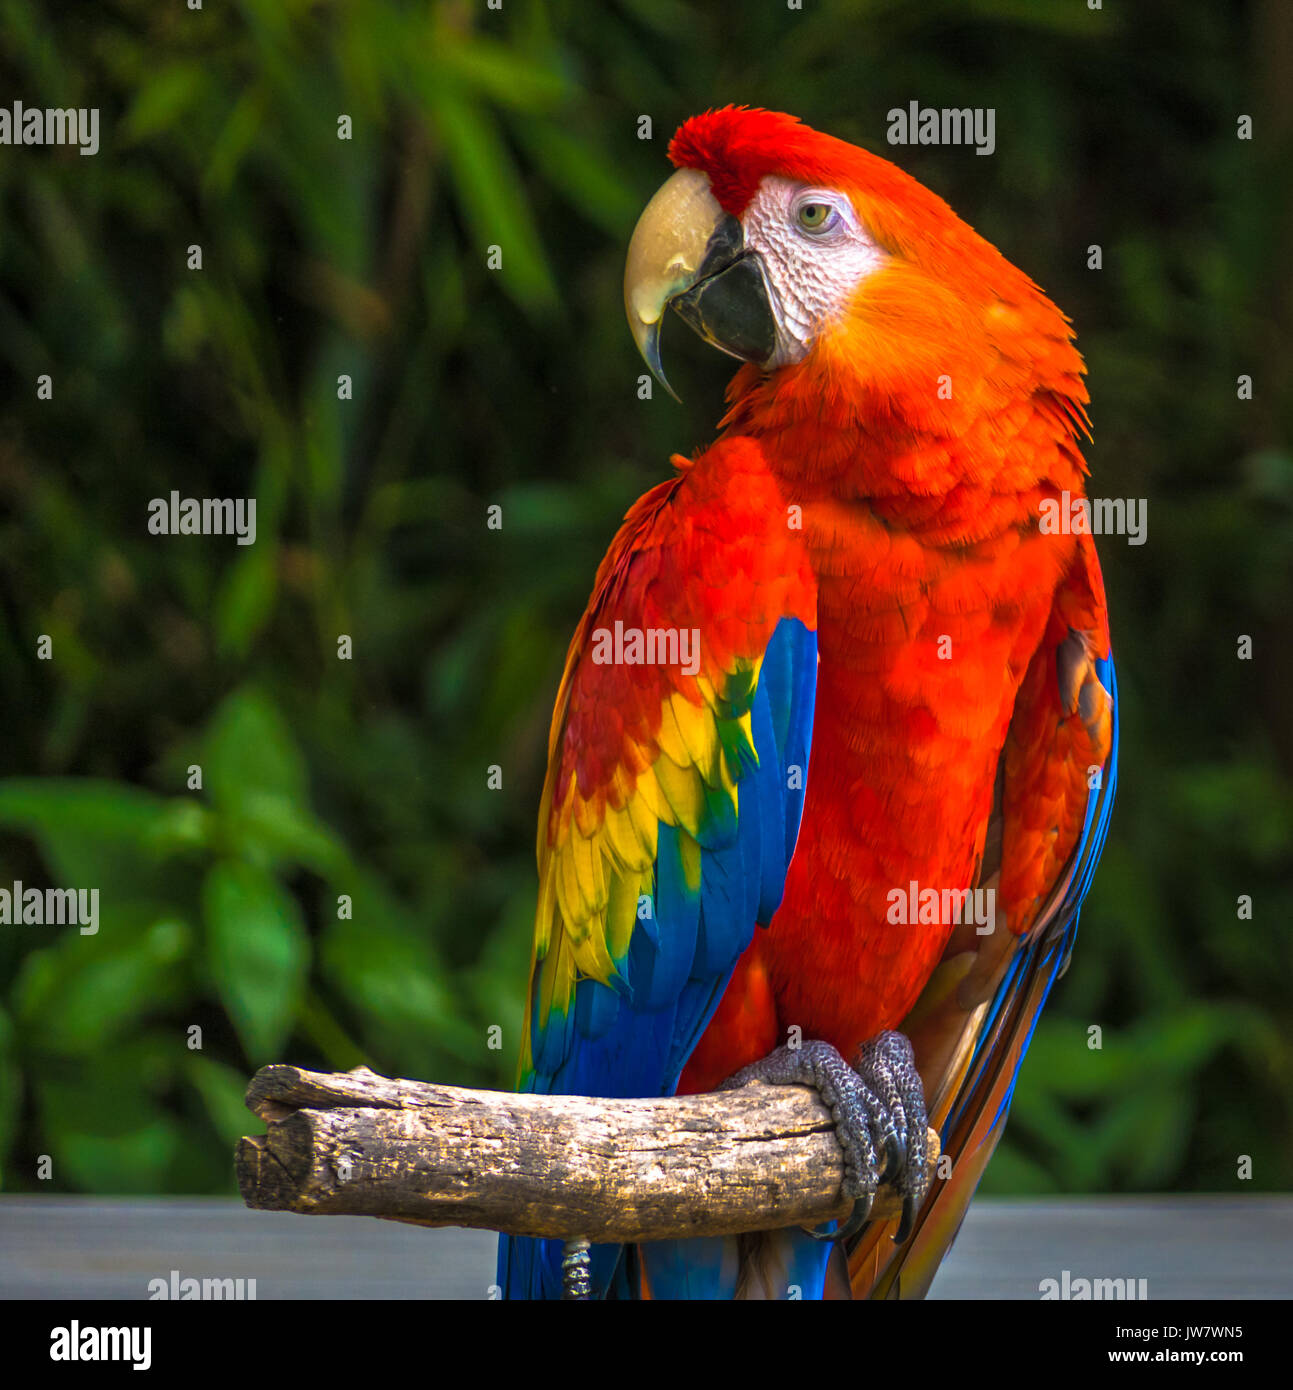 Red Parrot sitting on wooden stick - Stock Image